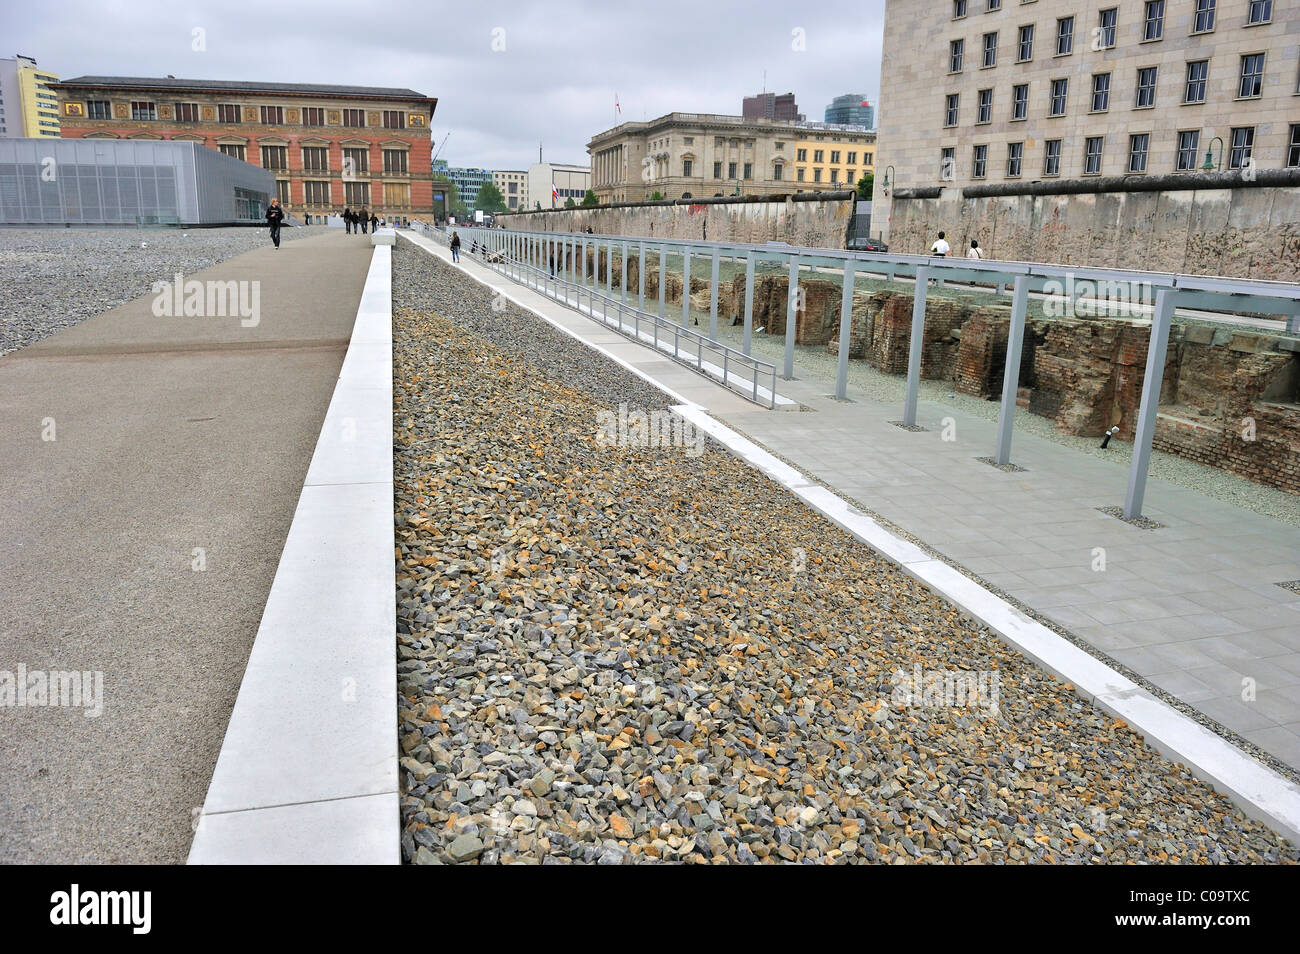 Redesigned exterior of the exhibition 'Topography of Terror' on the grounds of the former SS headquarters - Stock Image